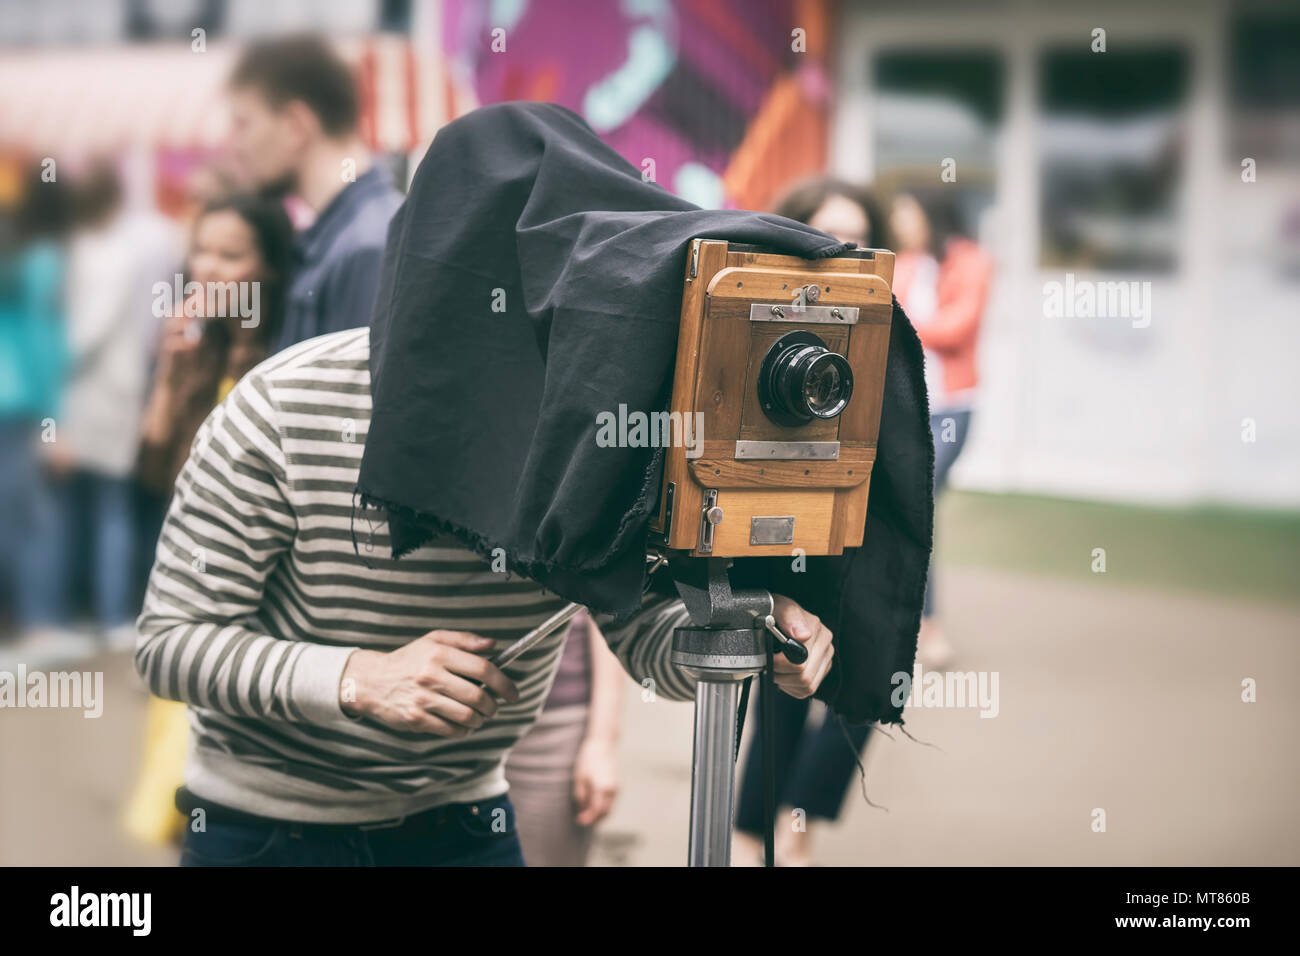 Photographer with antiquity vintage wooden camera under dark cloth cape photographing passers - old classical action, rarity concept - Stock Image